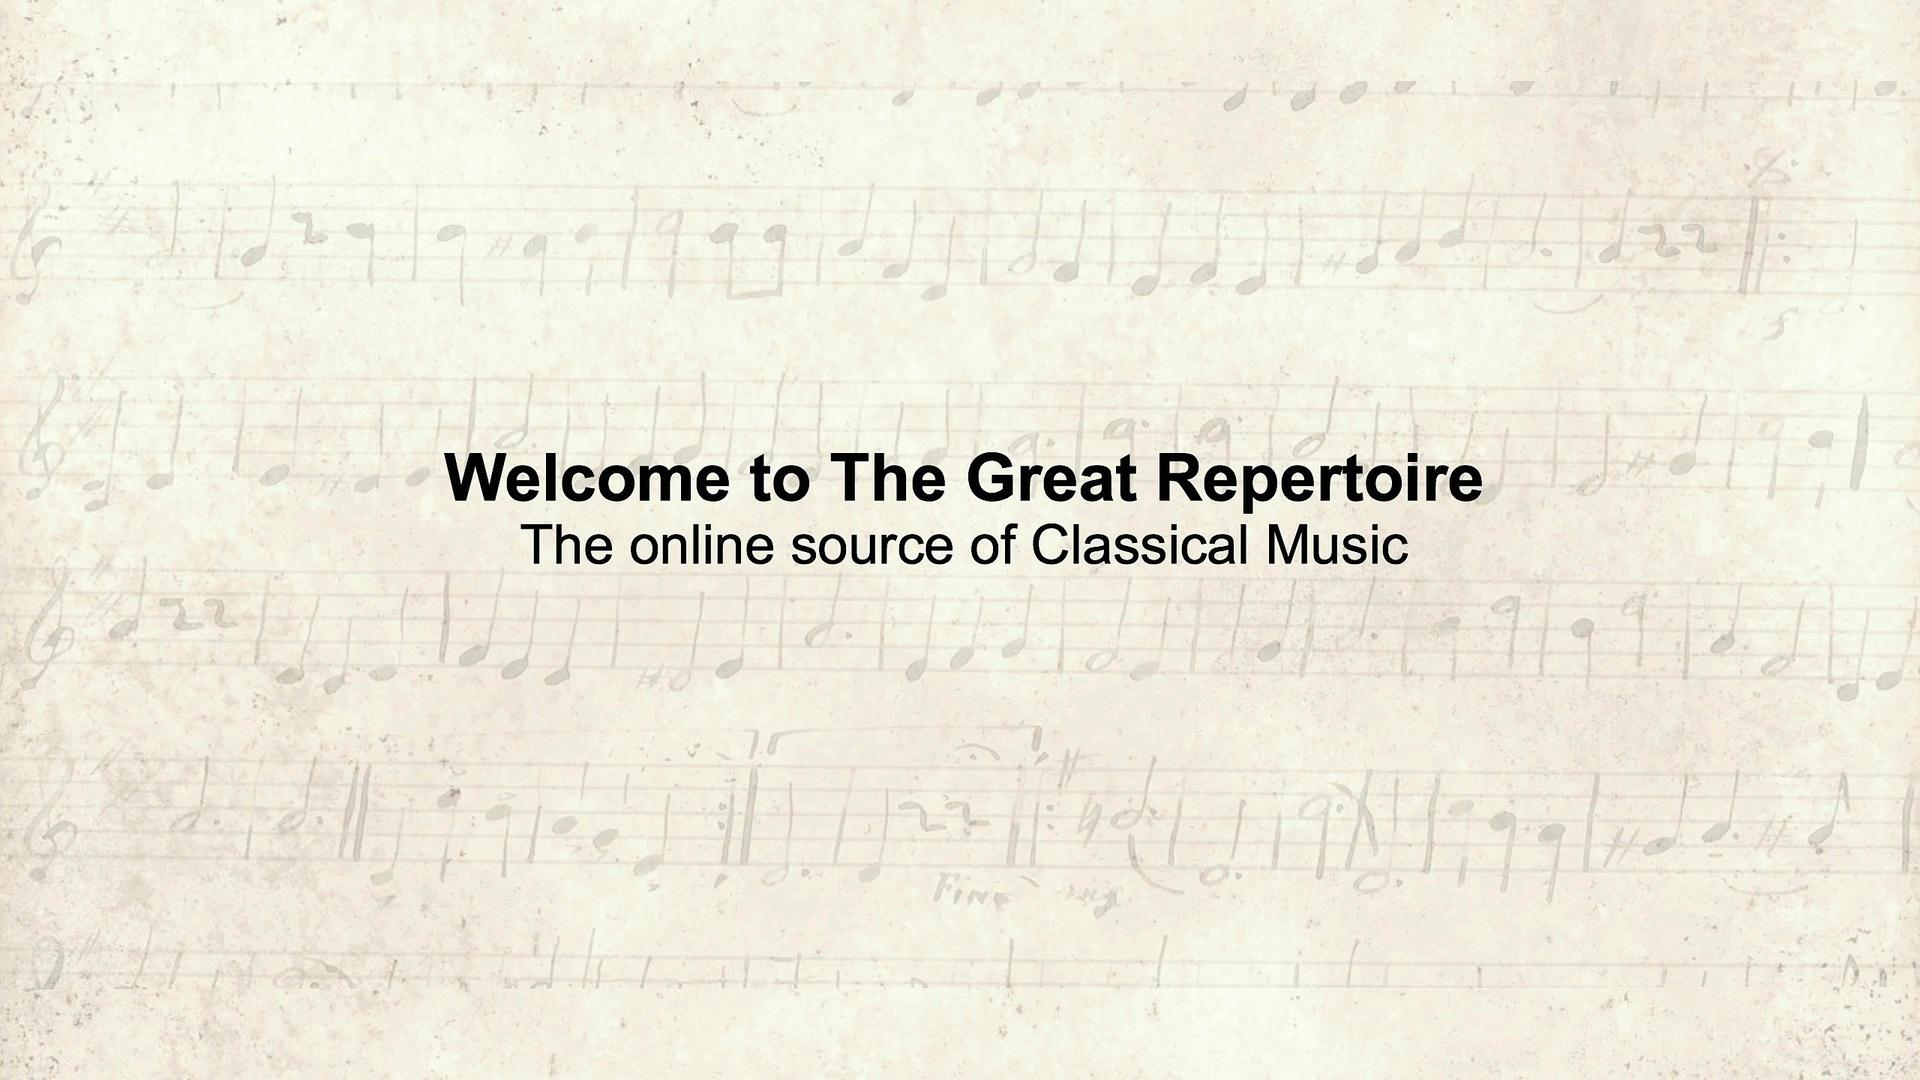 The Great Repertoire is creating Classical Music | Patreon